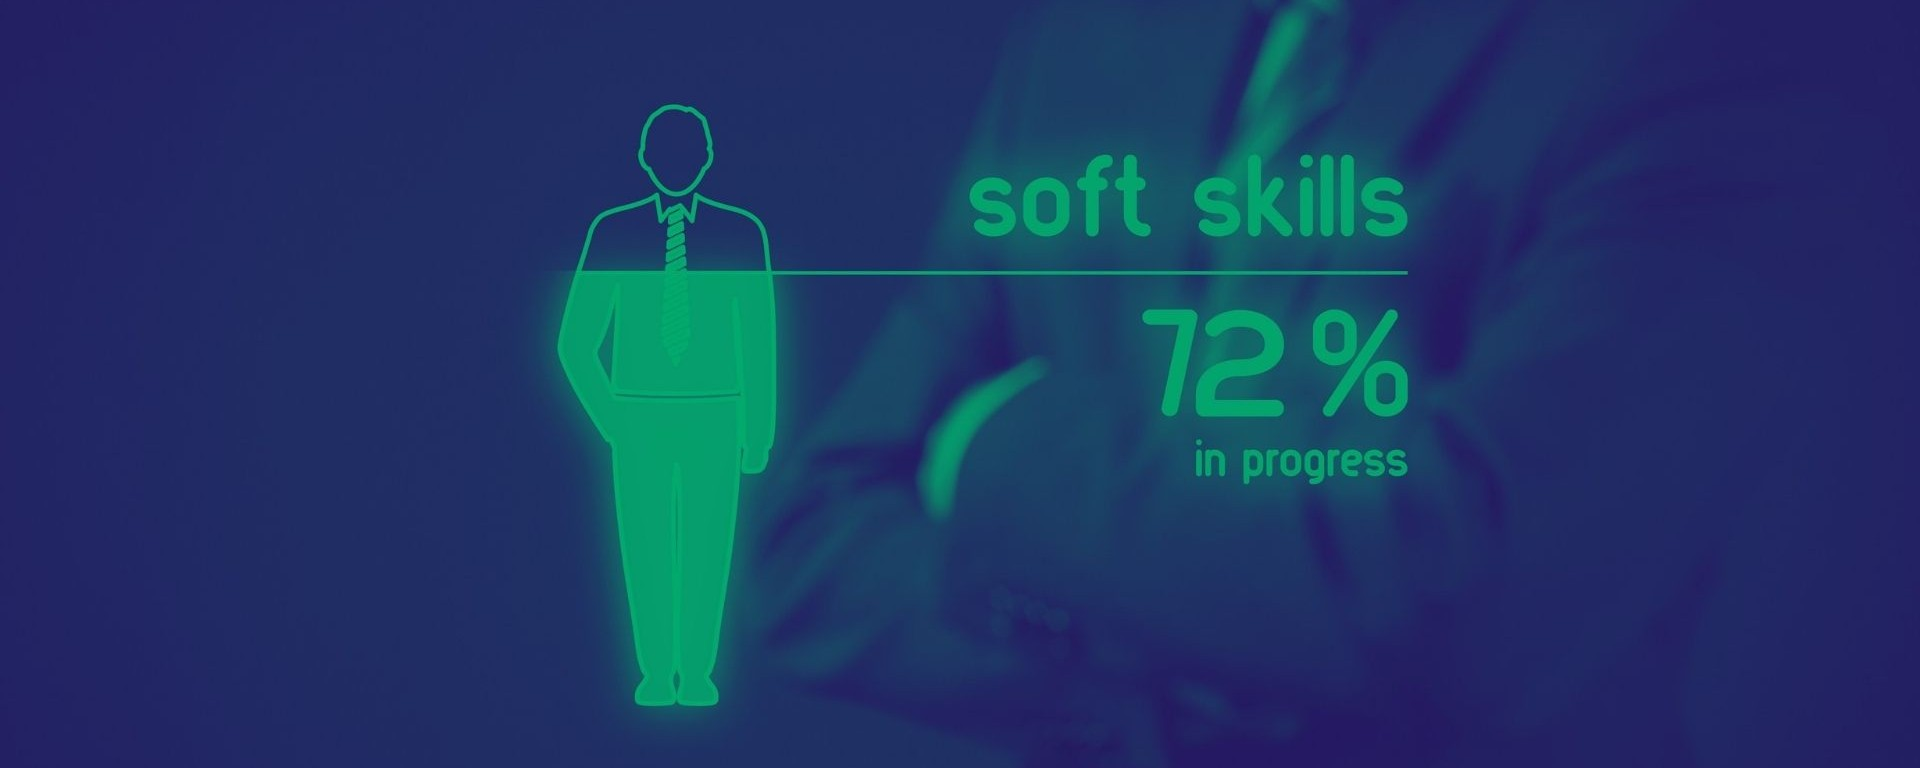 How to Make eLearning Work for Soft Skills Training